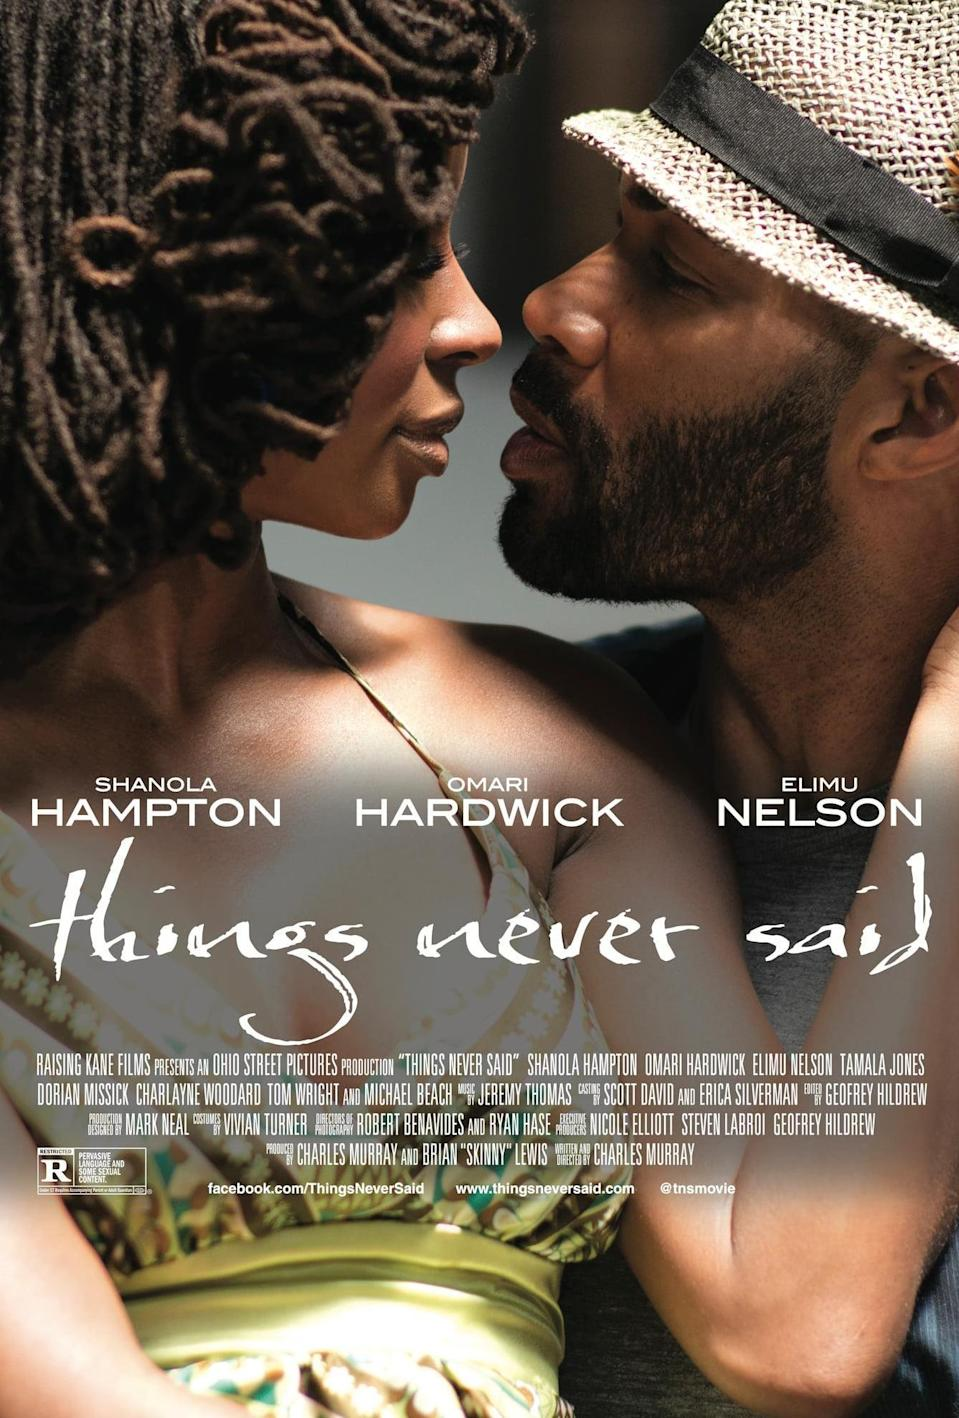 """<p>In this romantic drama, a poet who is lost, struggling, and in a troubled marriage develops a relationship with a man who helps her get her artistic voice back. This film is romantic, alluring, and totally tantalizing. </p> <p>Watch <a href=""""https://play.hbomax.com/page/urn:hbo:page:GXmAX8QLusjC3wwEAAClW:type:feature"""" class=""""link rapid-noclick-resp"""" rel=""""nofollow noopener"""" target=""""_blank"""" data-ylk=""""slk:Things Never Said""""> <strong>Things Never Said</strong></a> on HBO Max now.</p>"""